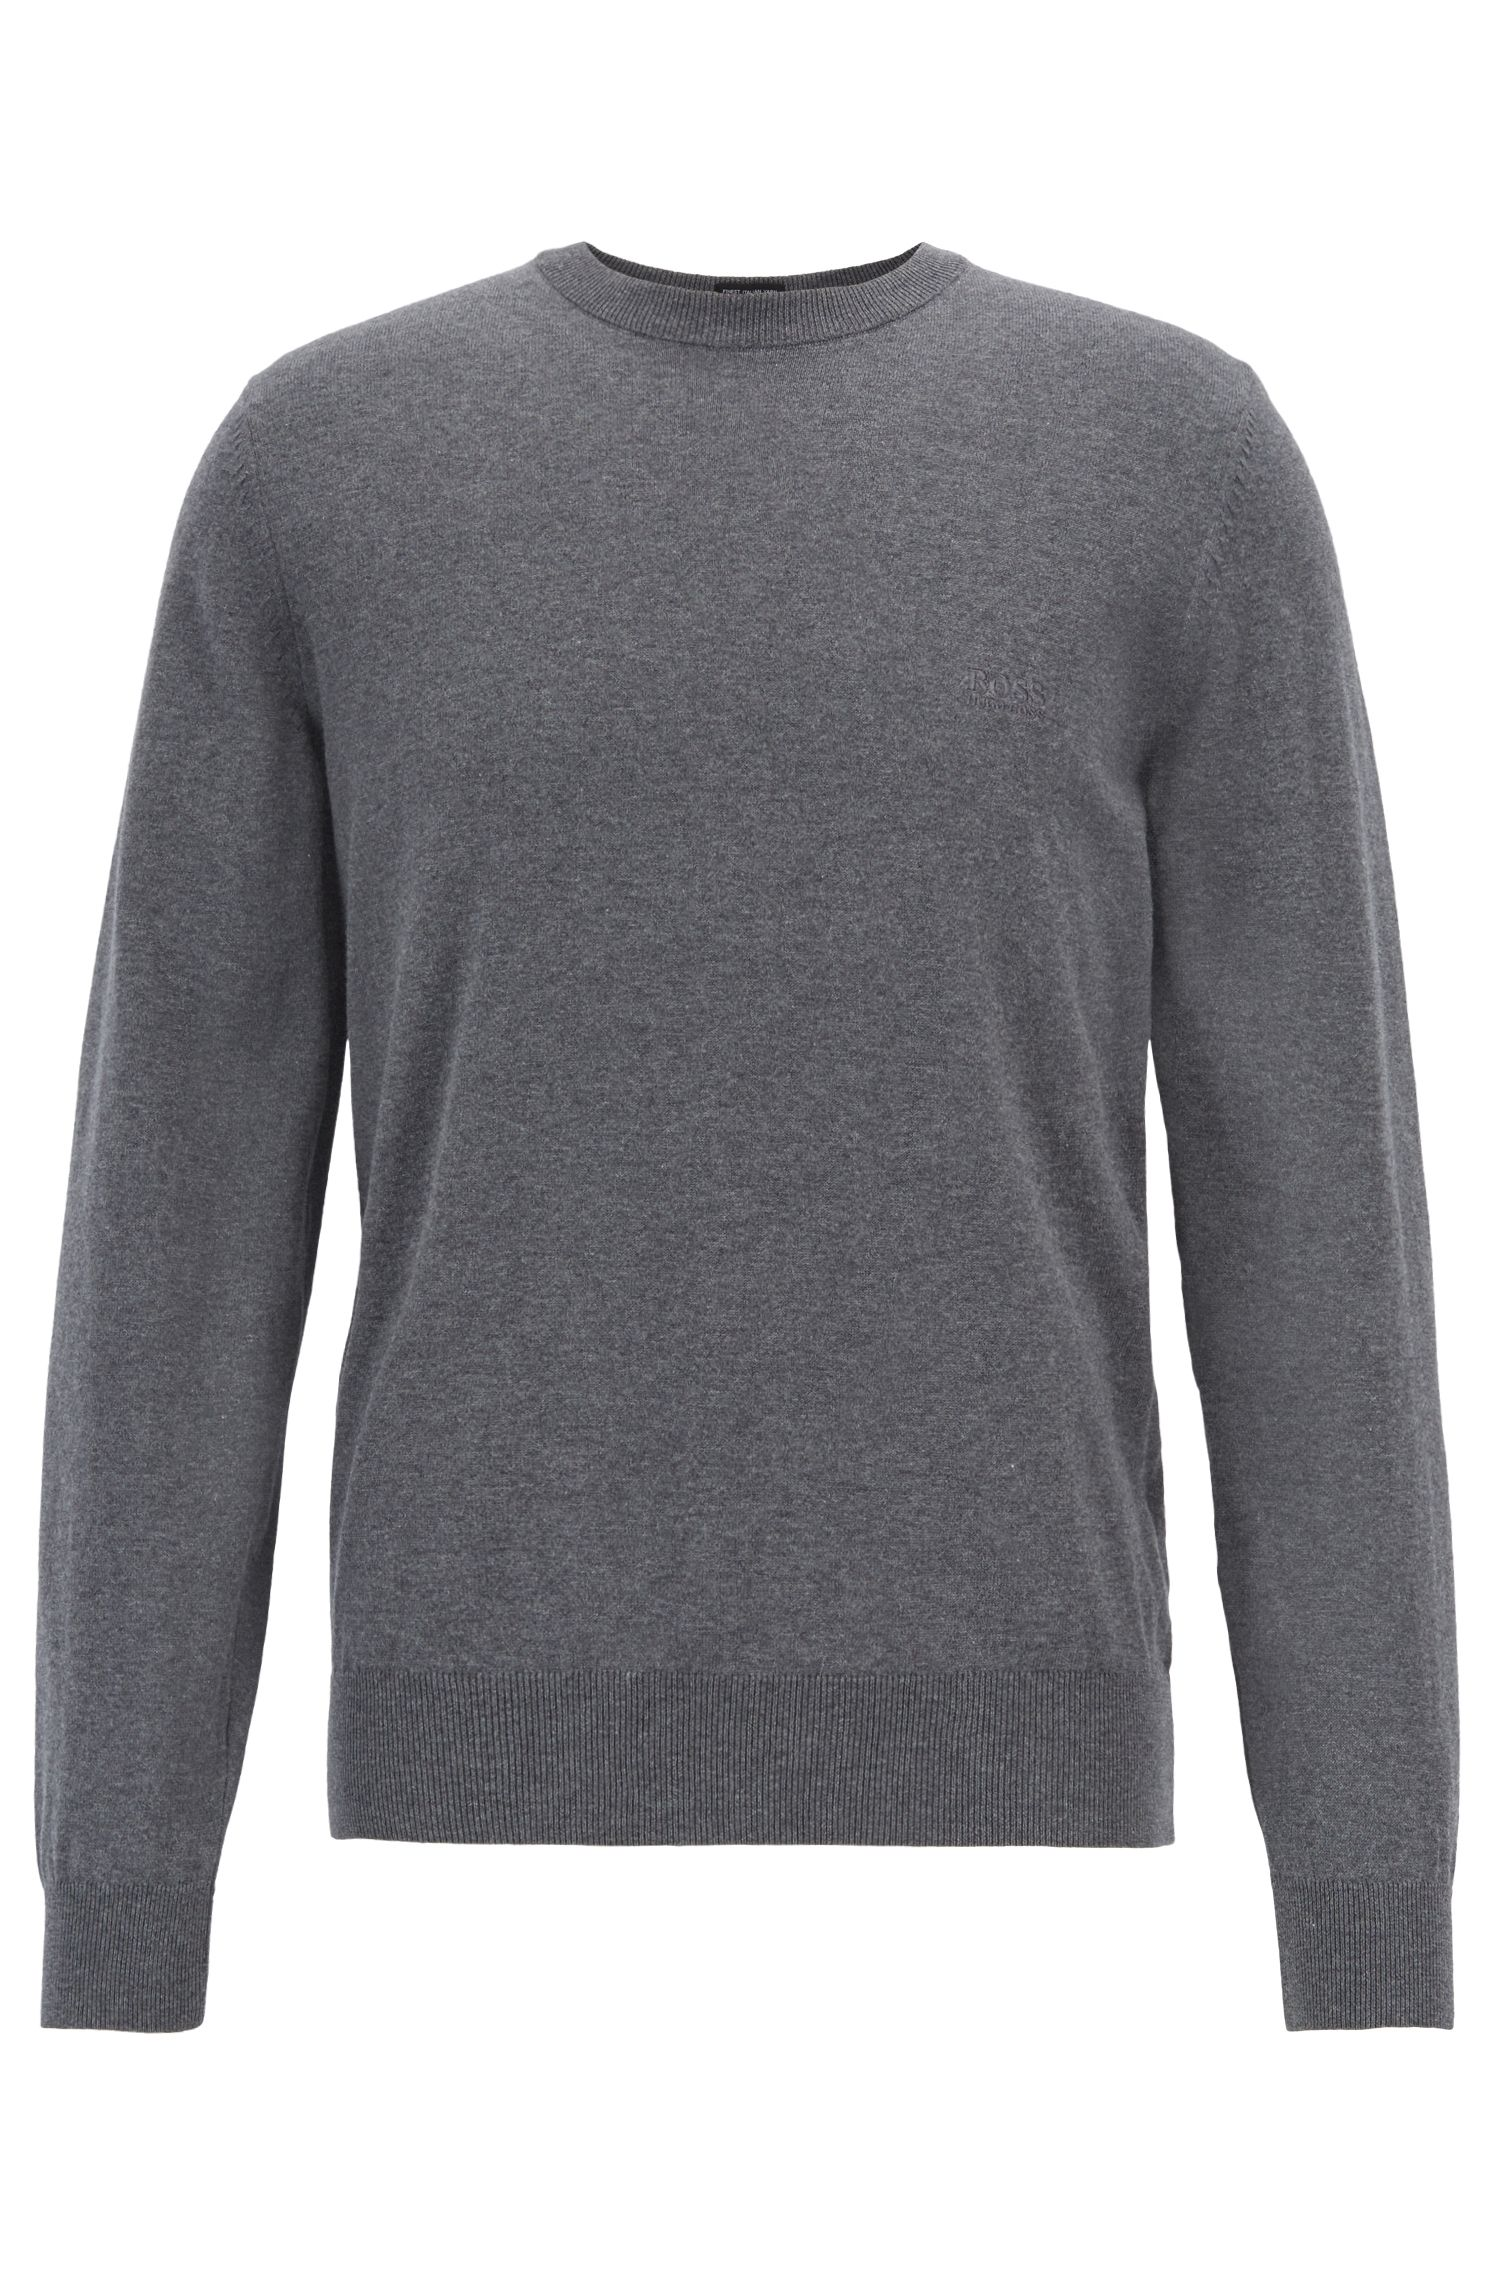 Crew-neck sweater in single-jersey cotton, Grey